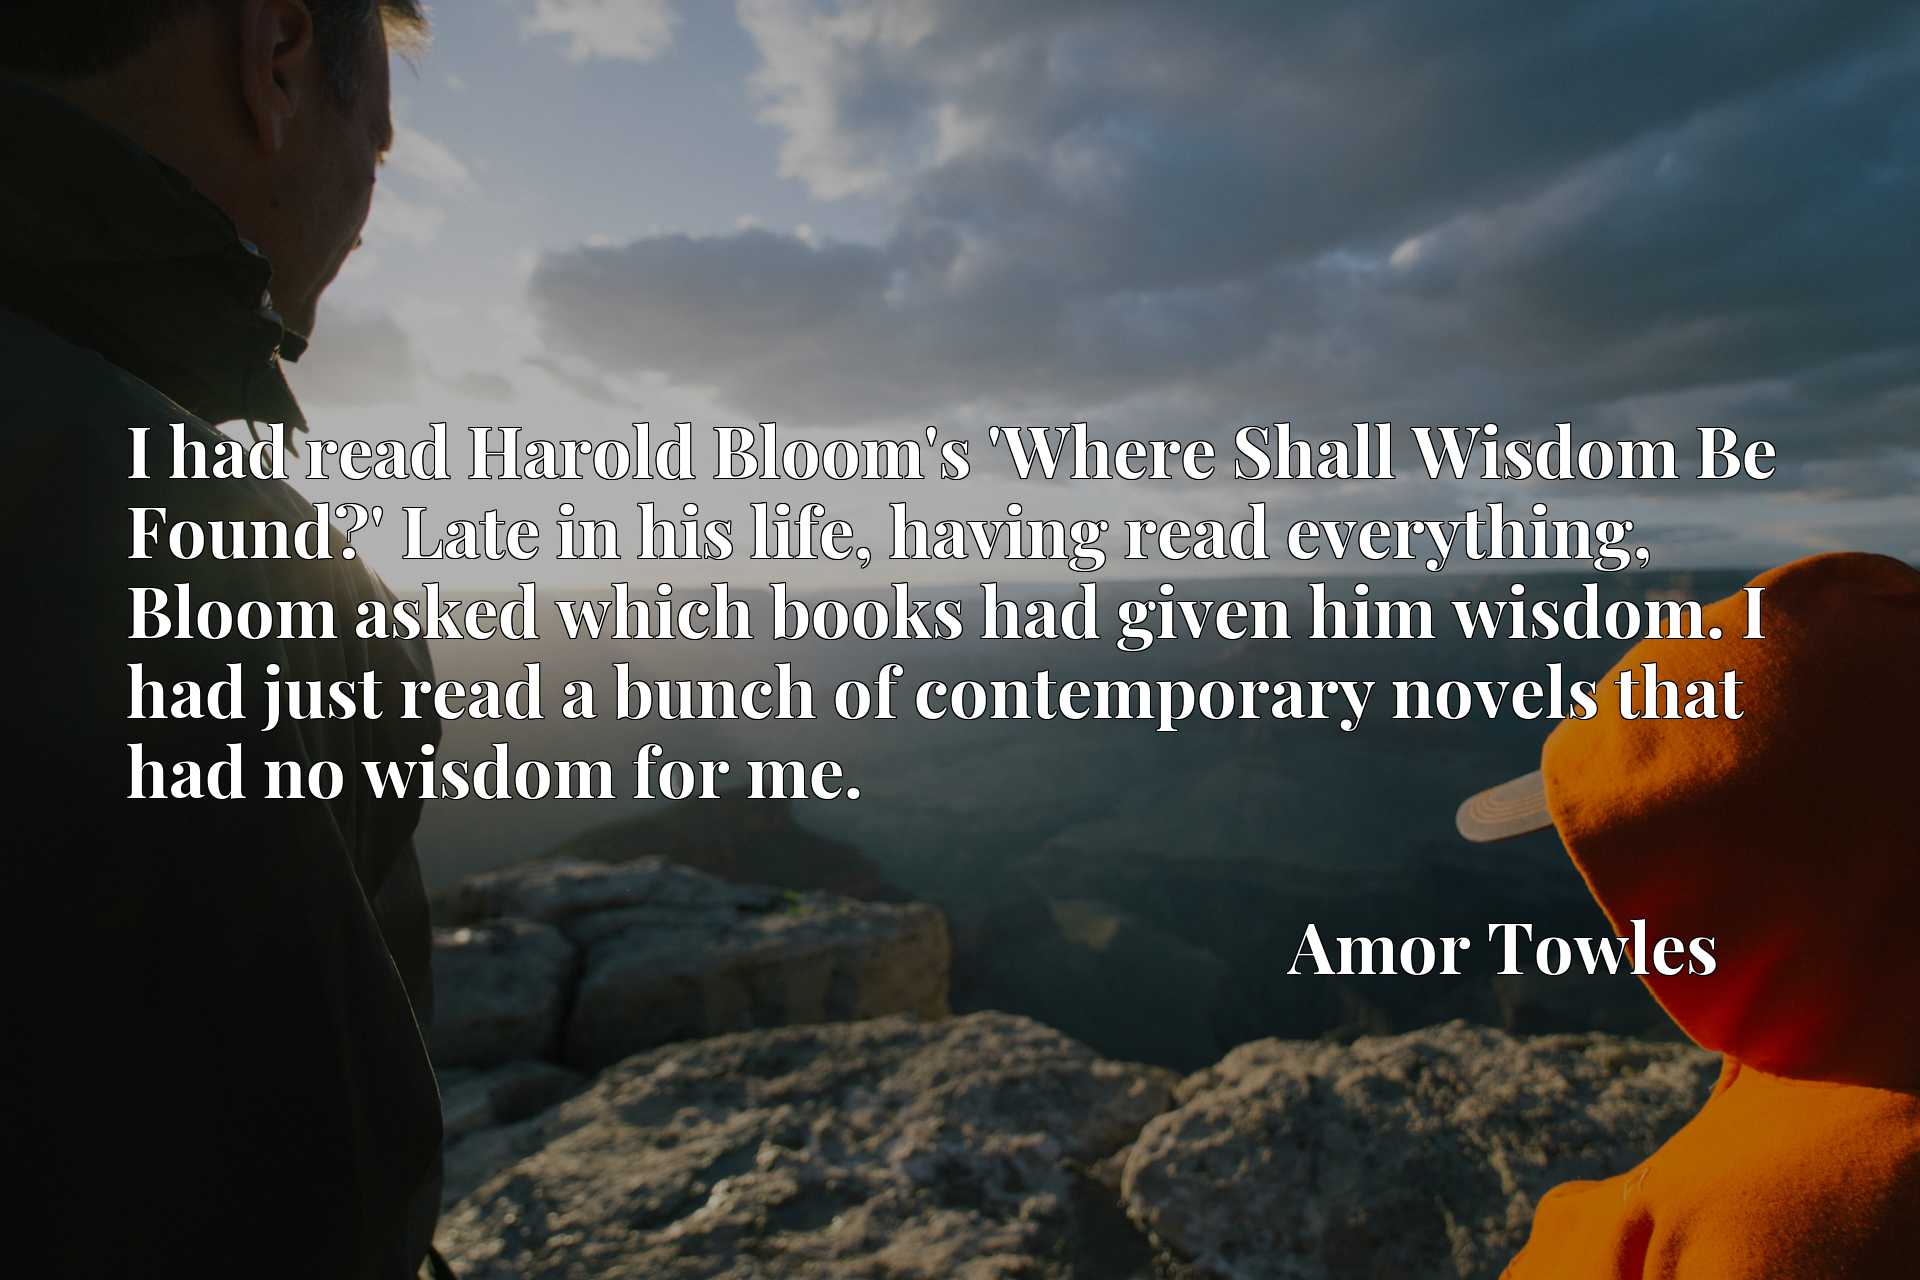 I had read Harold Bloom's 'Where Shall Wisdom Be Found?' Late in his life, having read everything, Bloom asked which books had given him wisdom. I had just read a bunch of contemporary novels that had no wisdom for me.